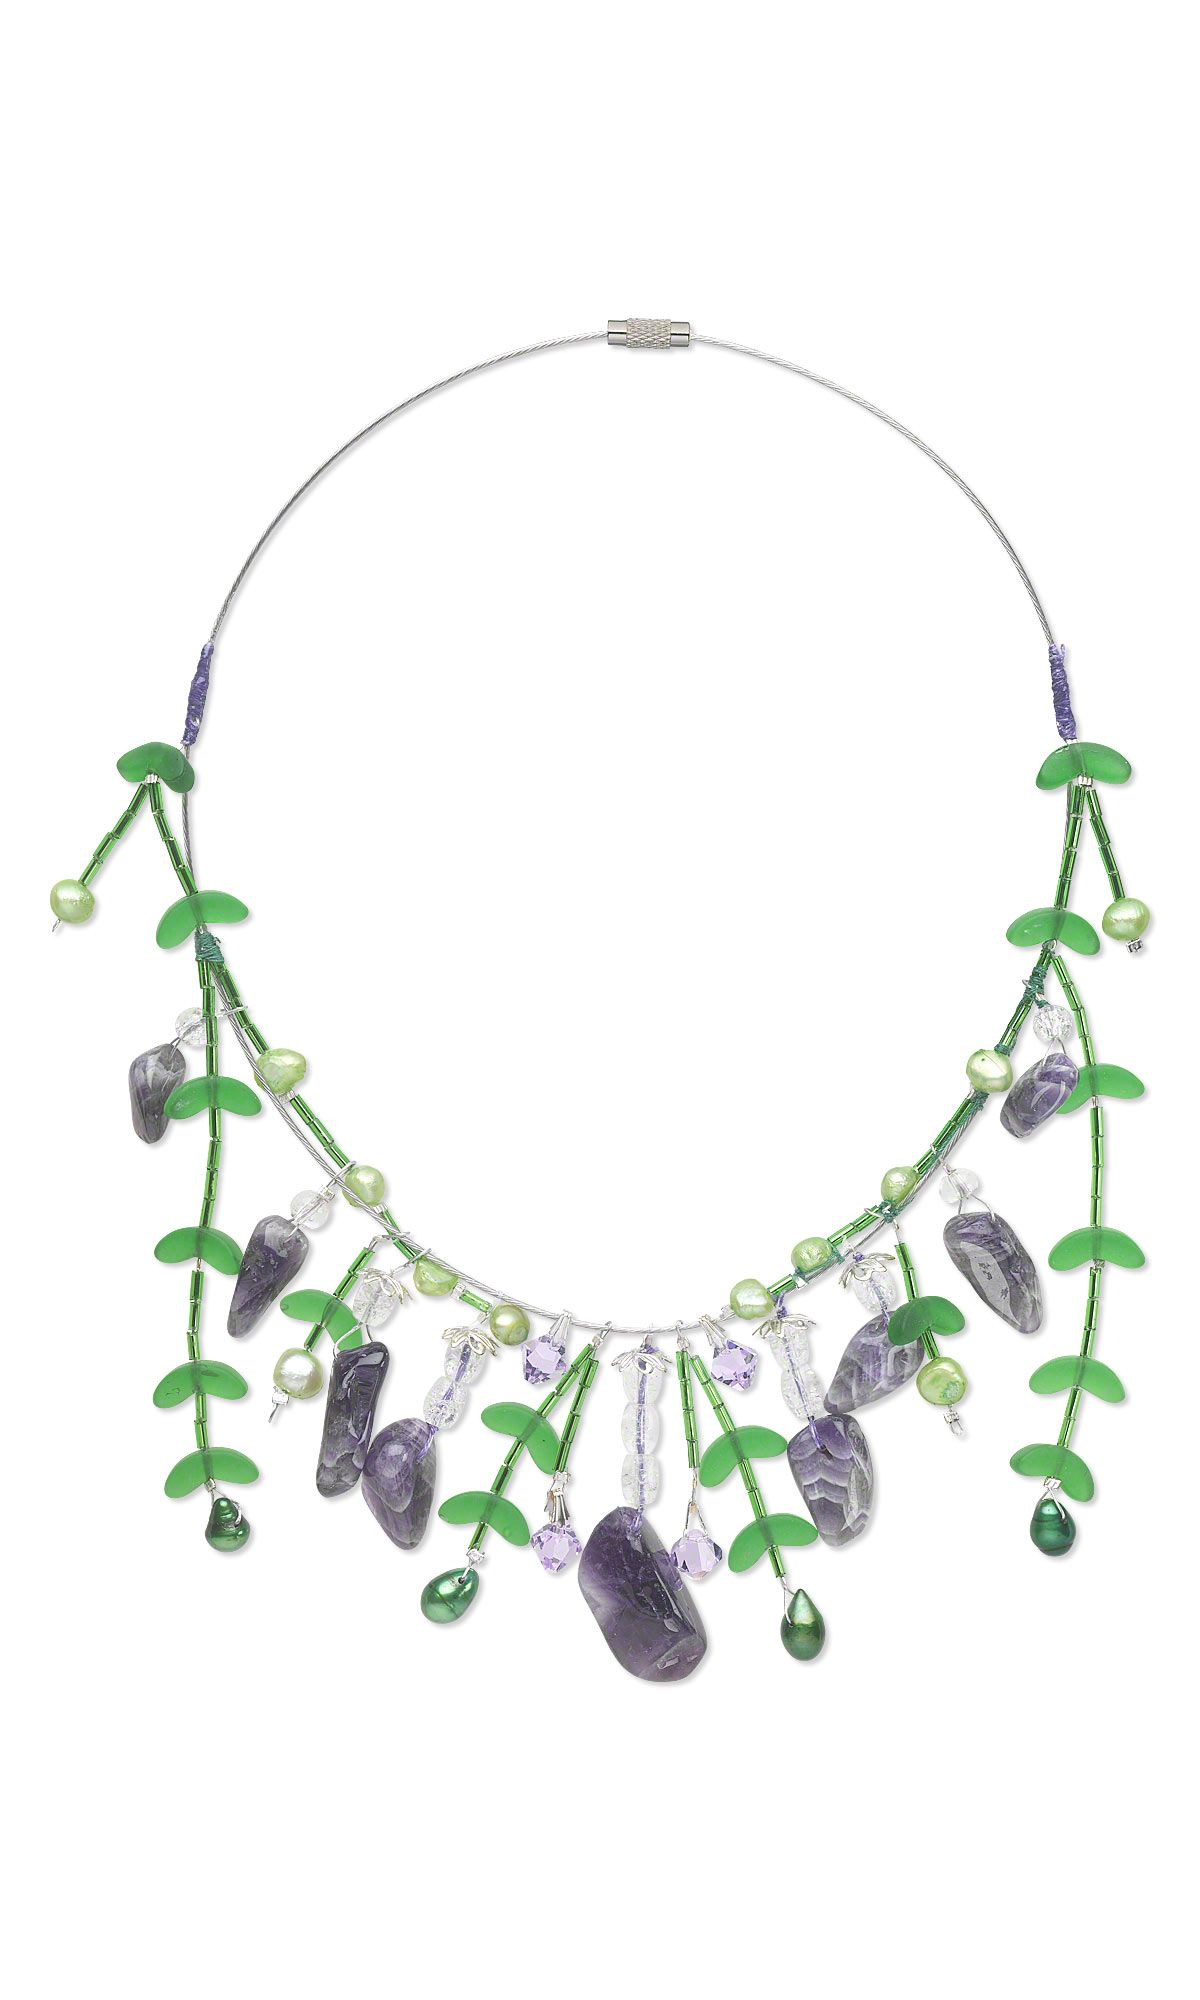 jewelry design single strand necklace with crackle glass beads